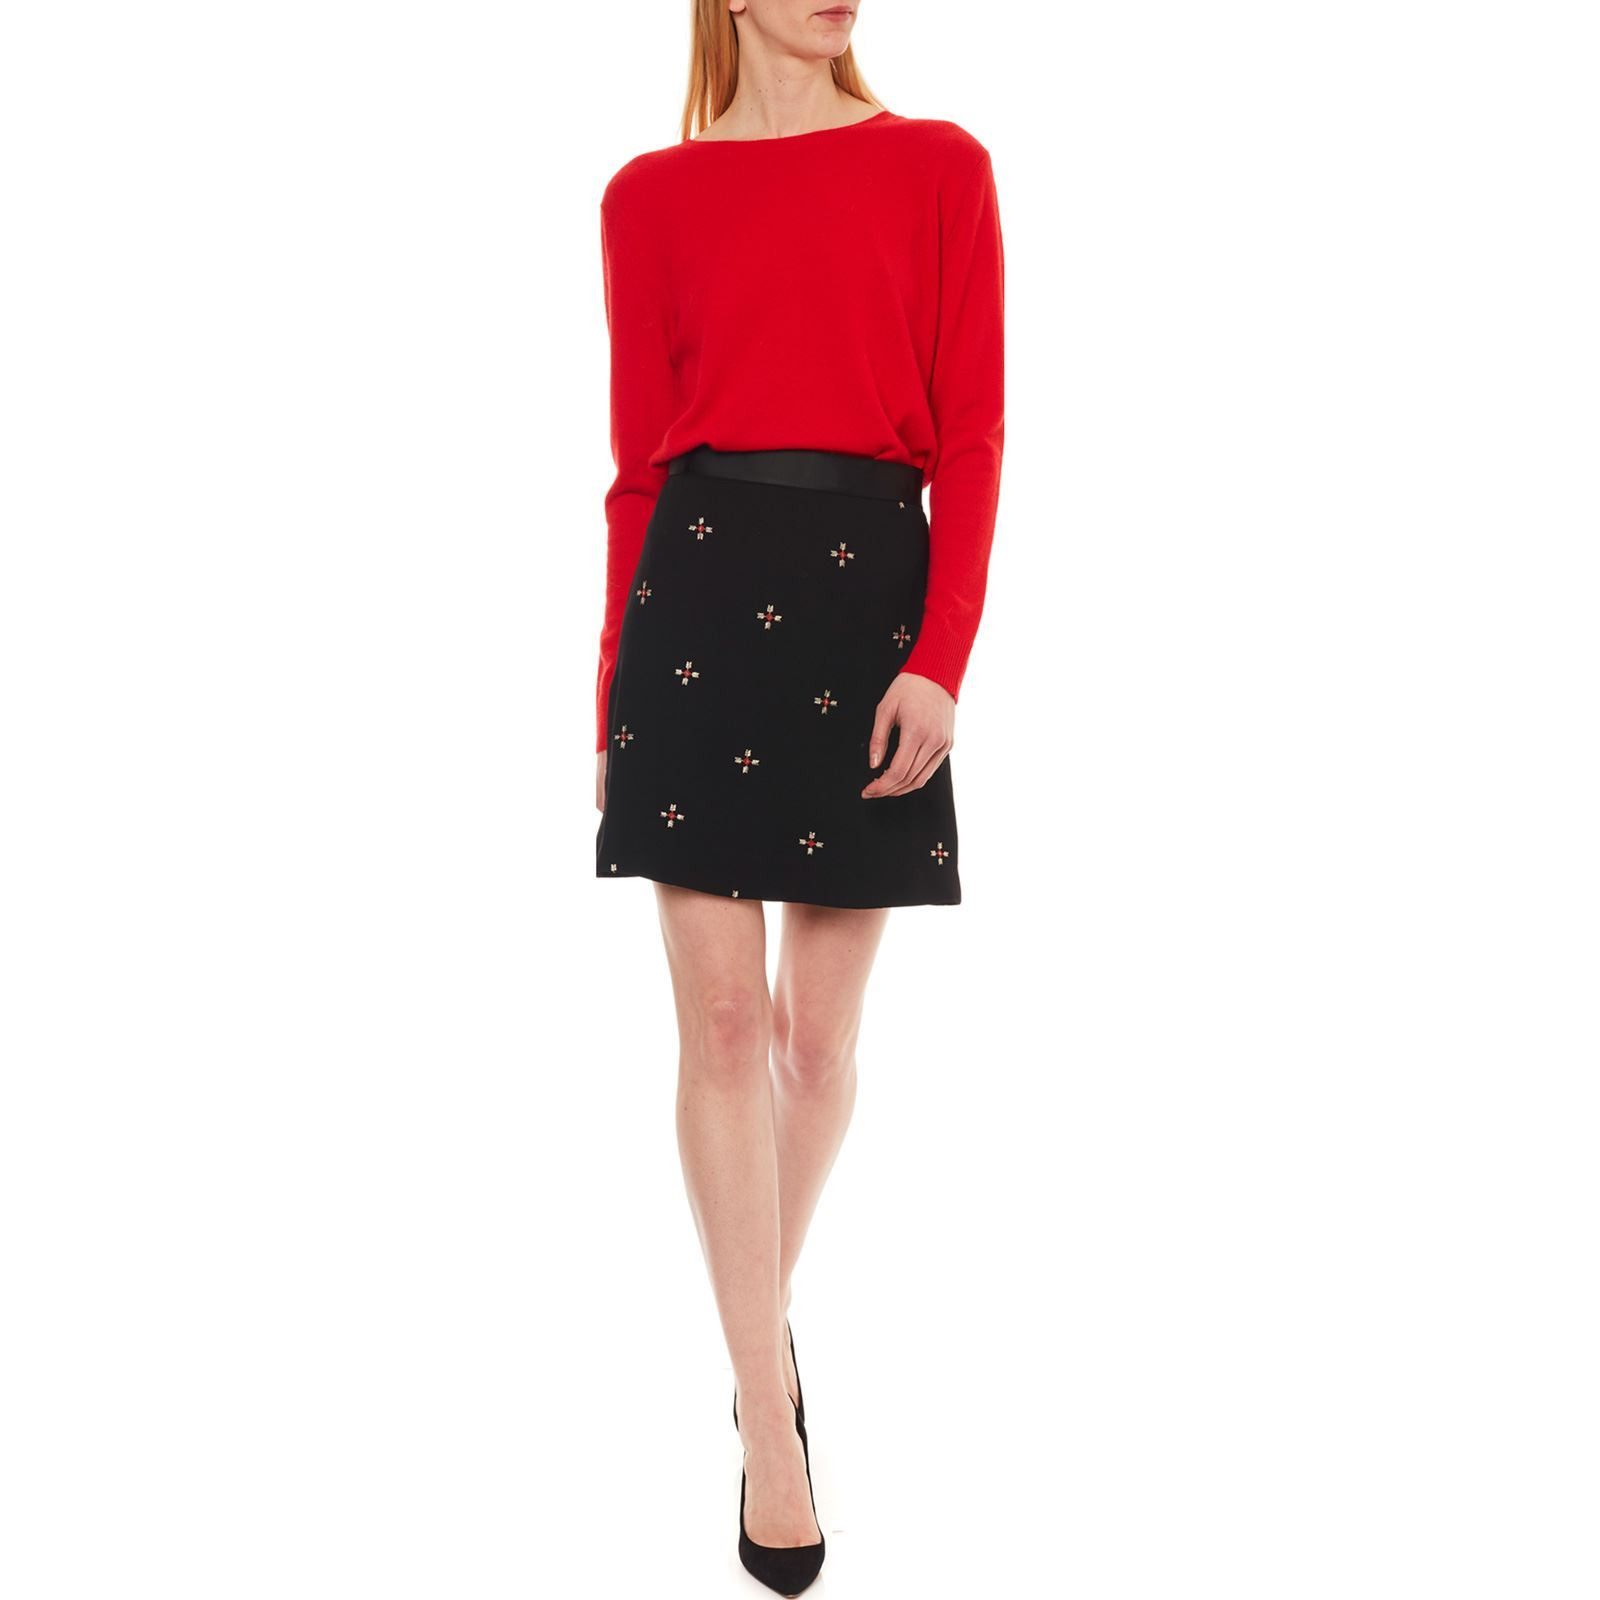 Caroll Erica - Pull 100% cachemire - rouge   BrandAlley 971697c7373